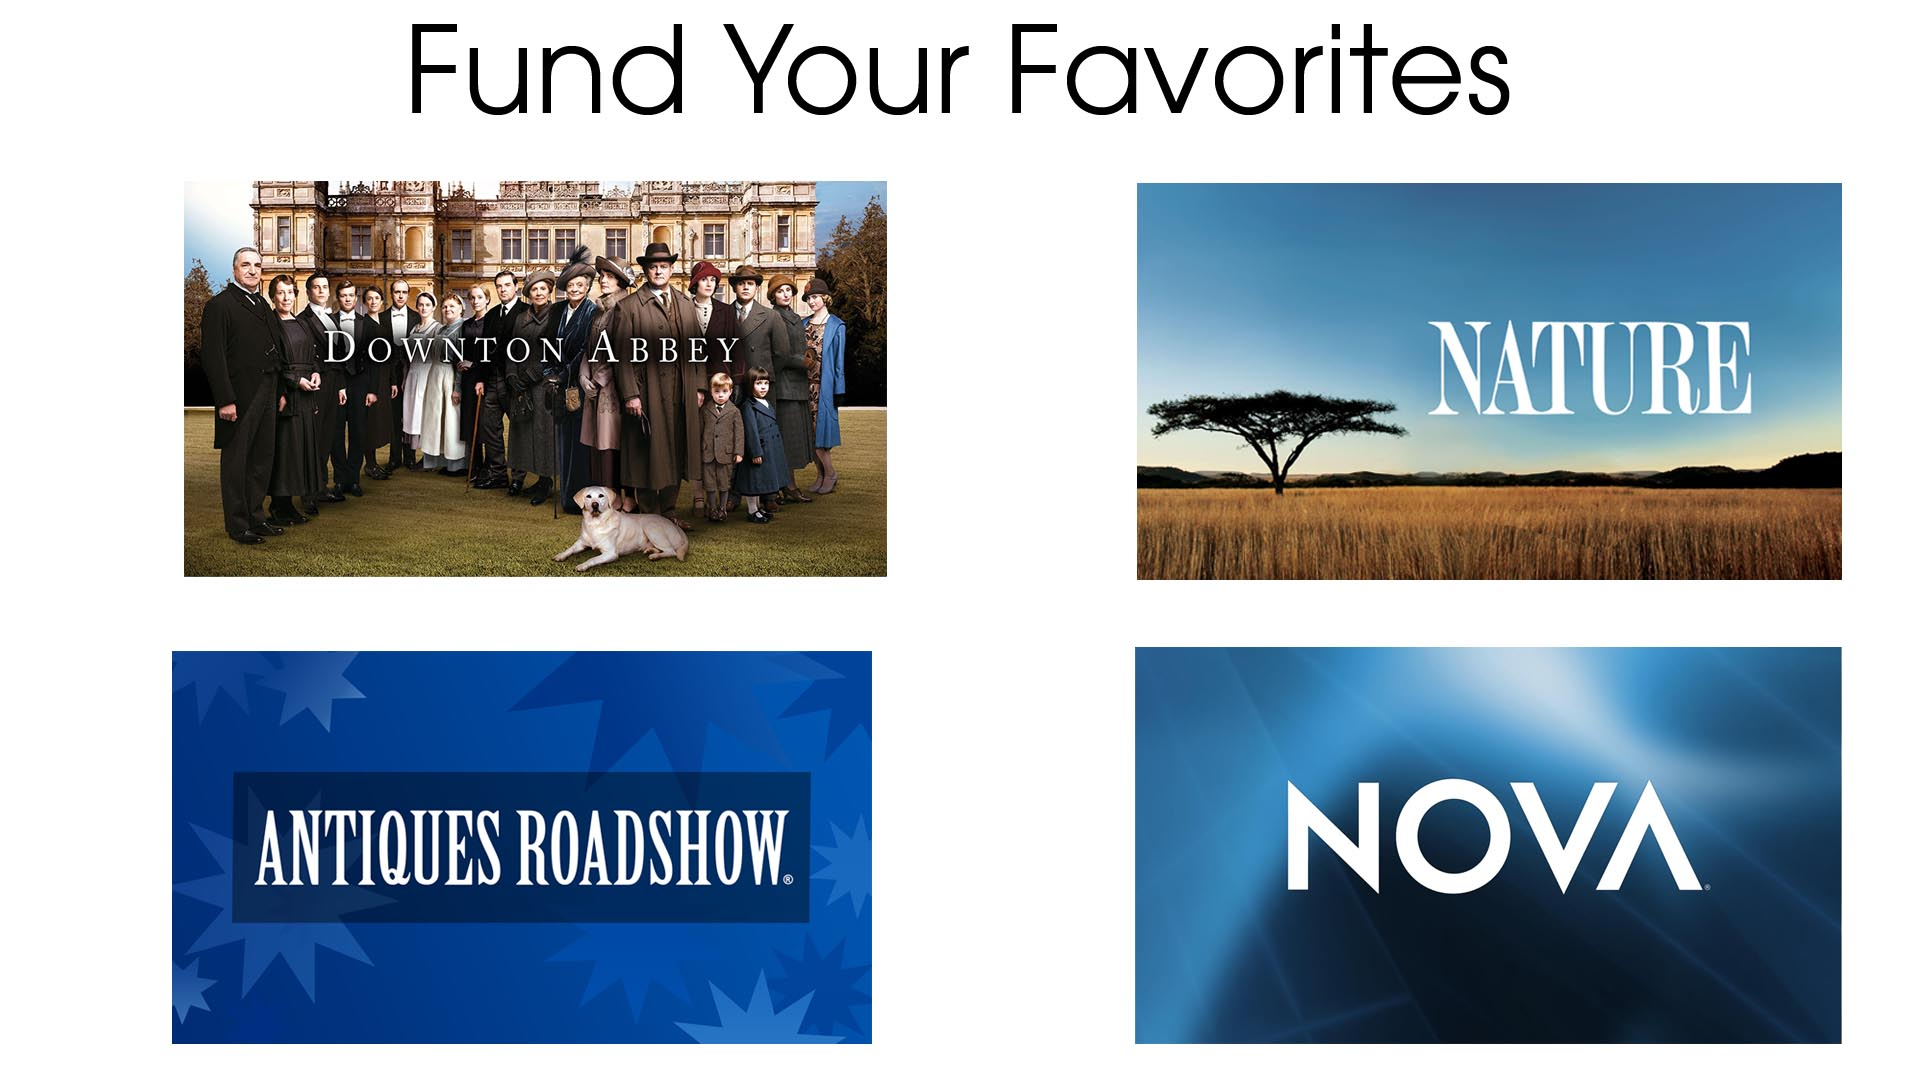 Fund Your Favorites